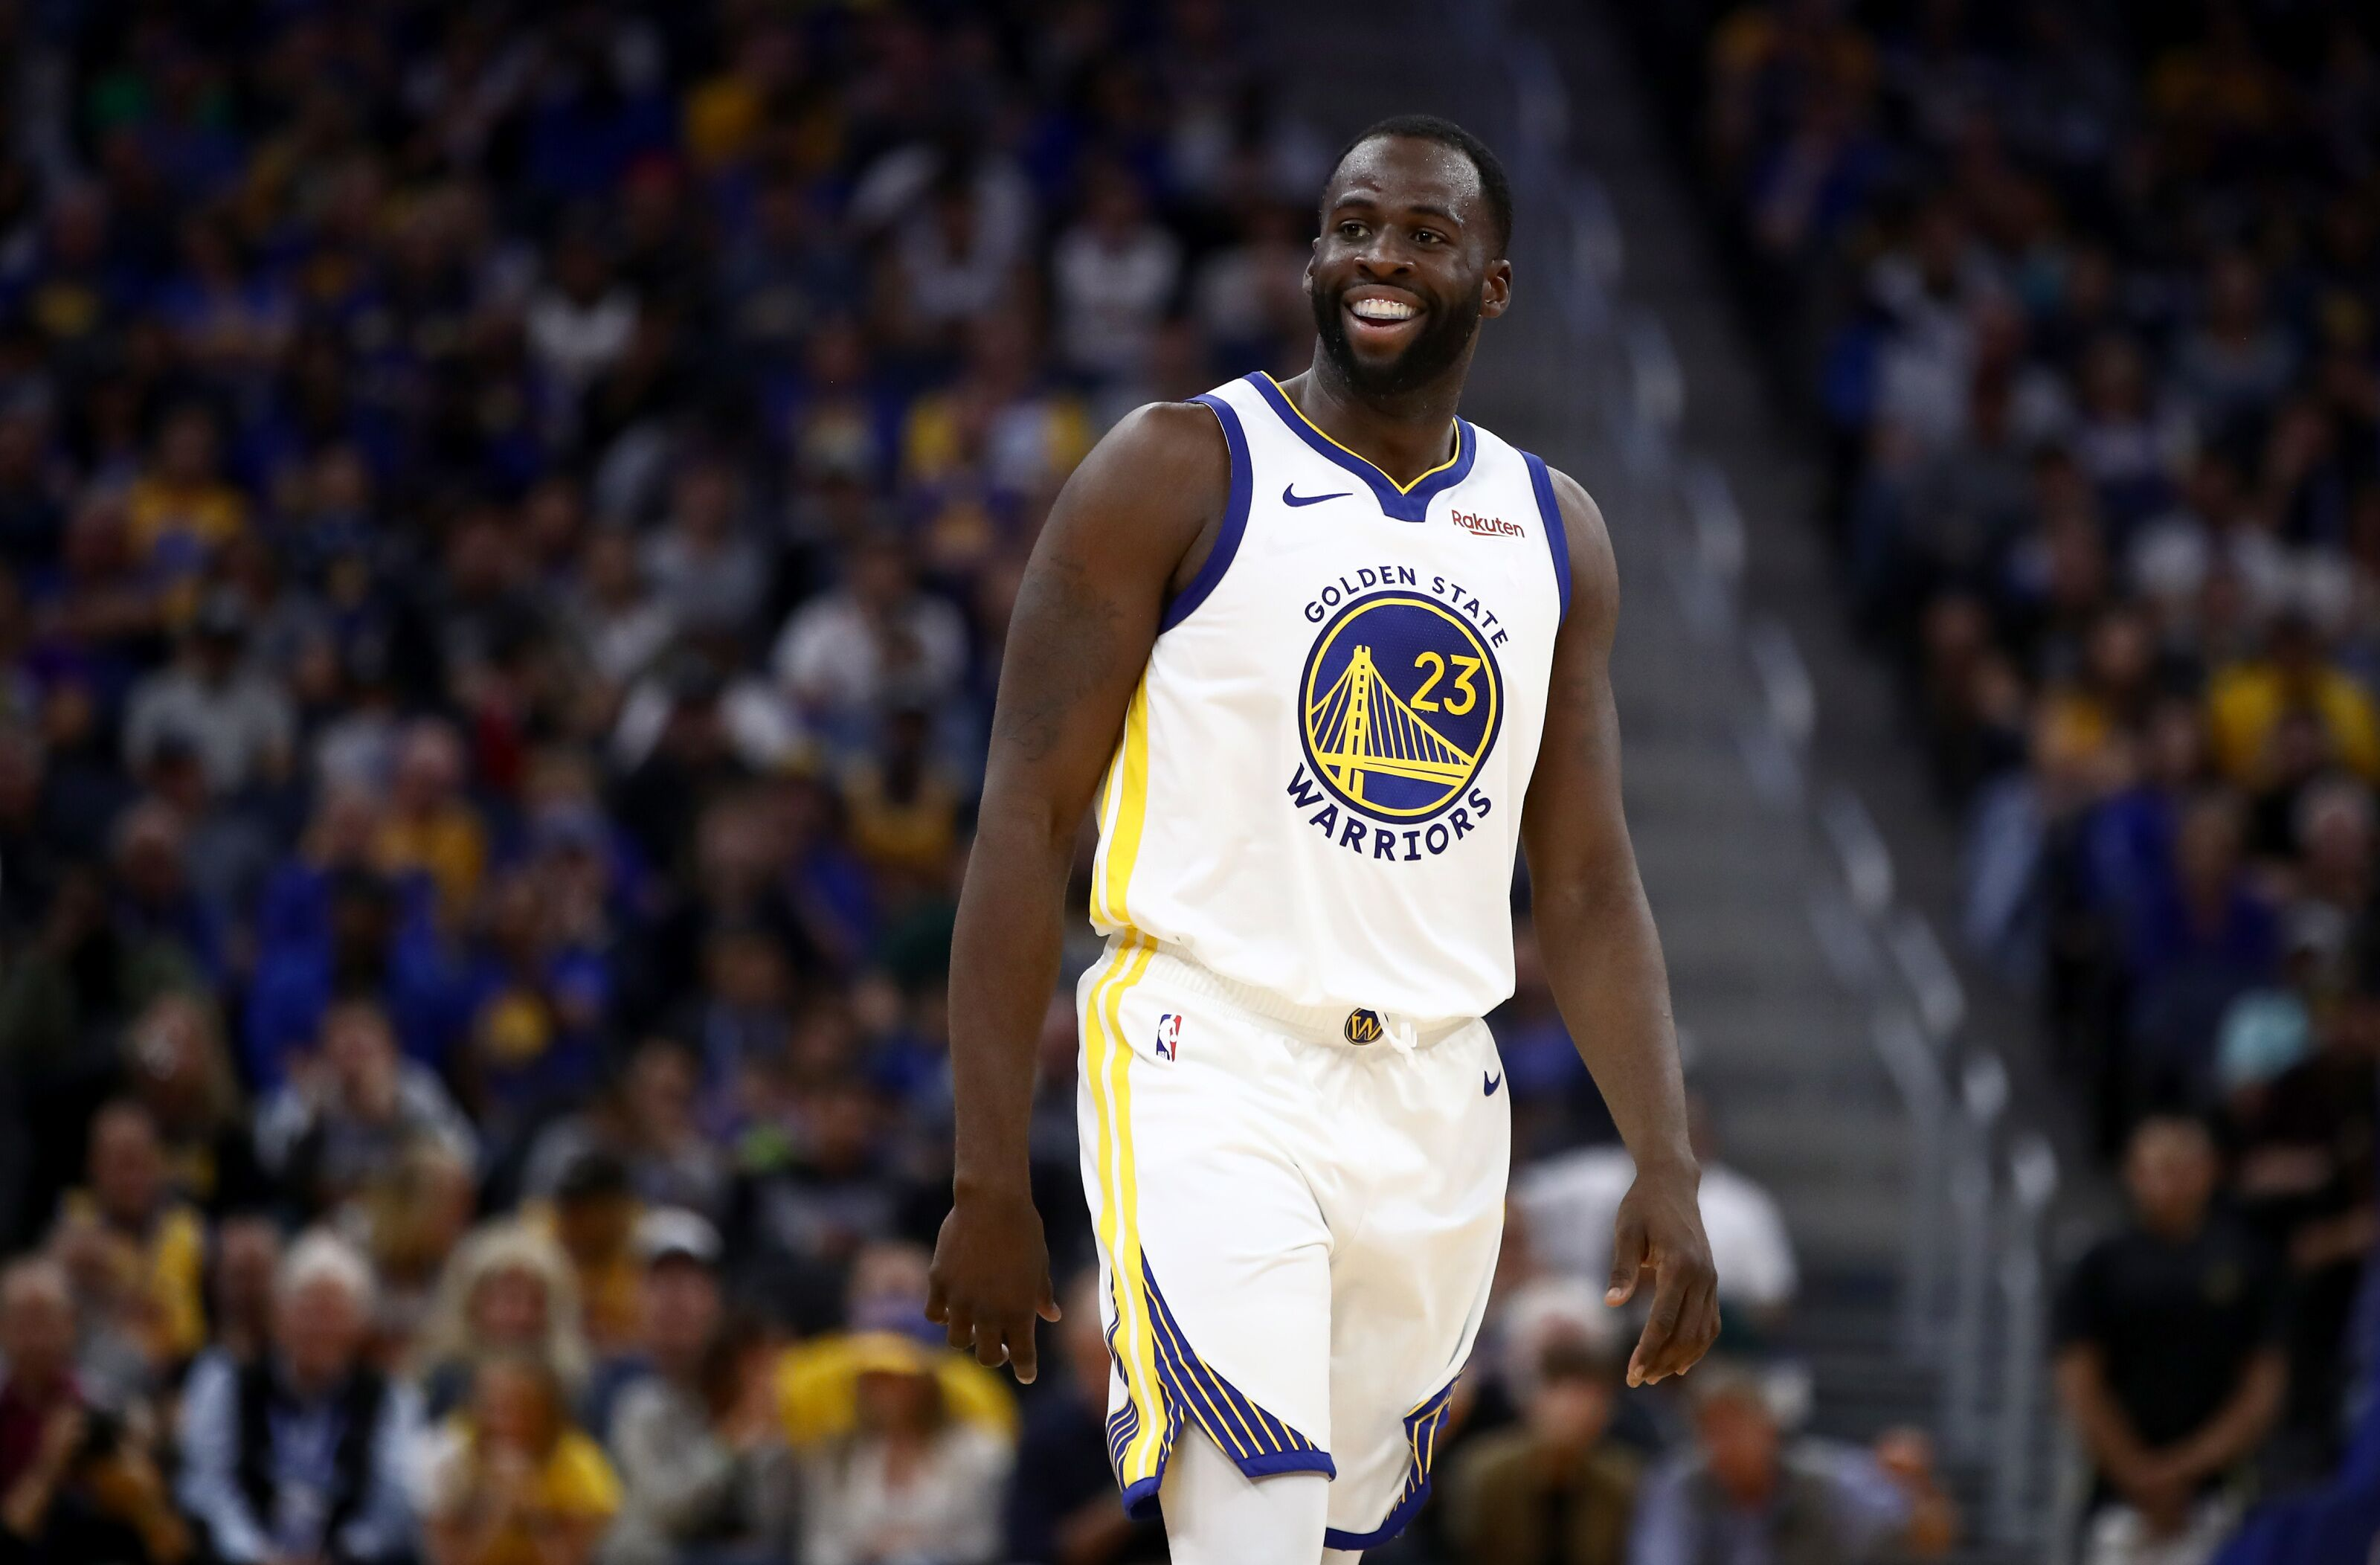 Golden State Warriors: Draymond Green's height proves he is special